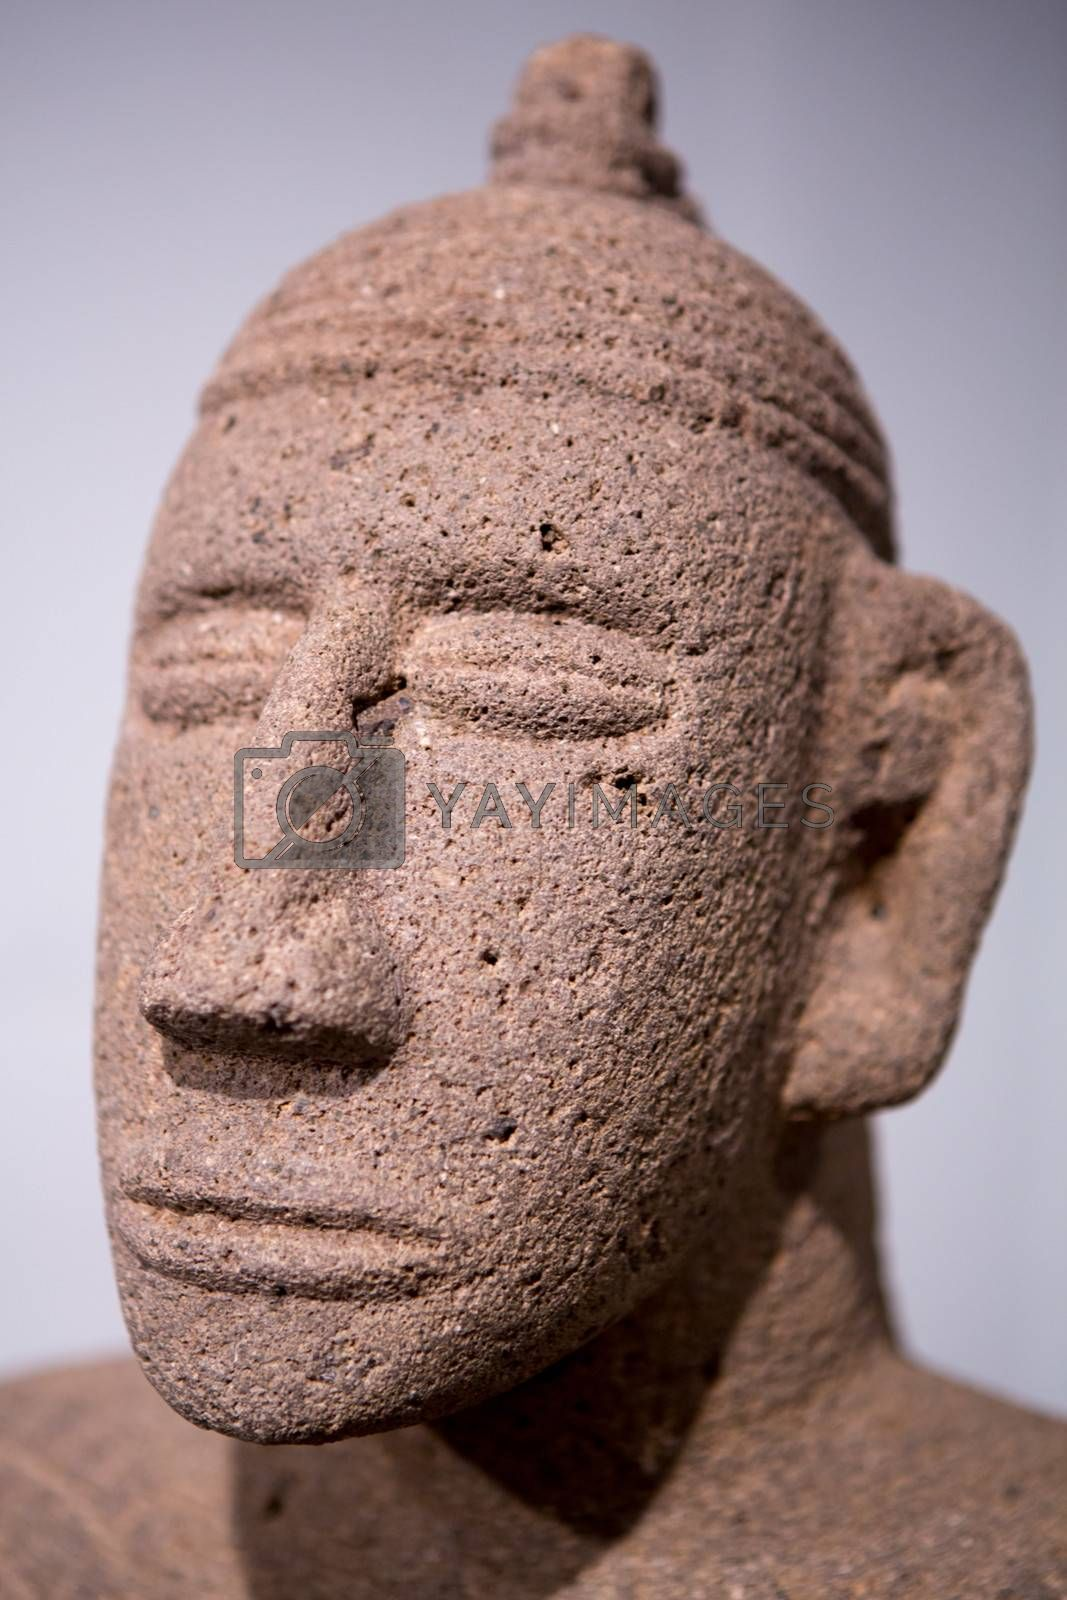 Detail of the head of a Mayan sculpture found in Costa Rica. Ancient Maya art refers to the material arts of the Maya civilization, an eastern and south-eastern Mesoamerican culture that took shape in the course of the later Preclassic period (500 BC to 200 AD).